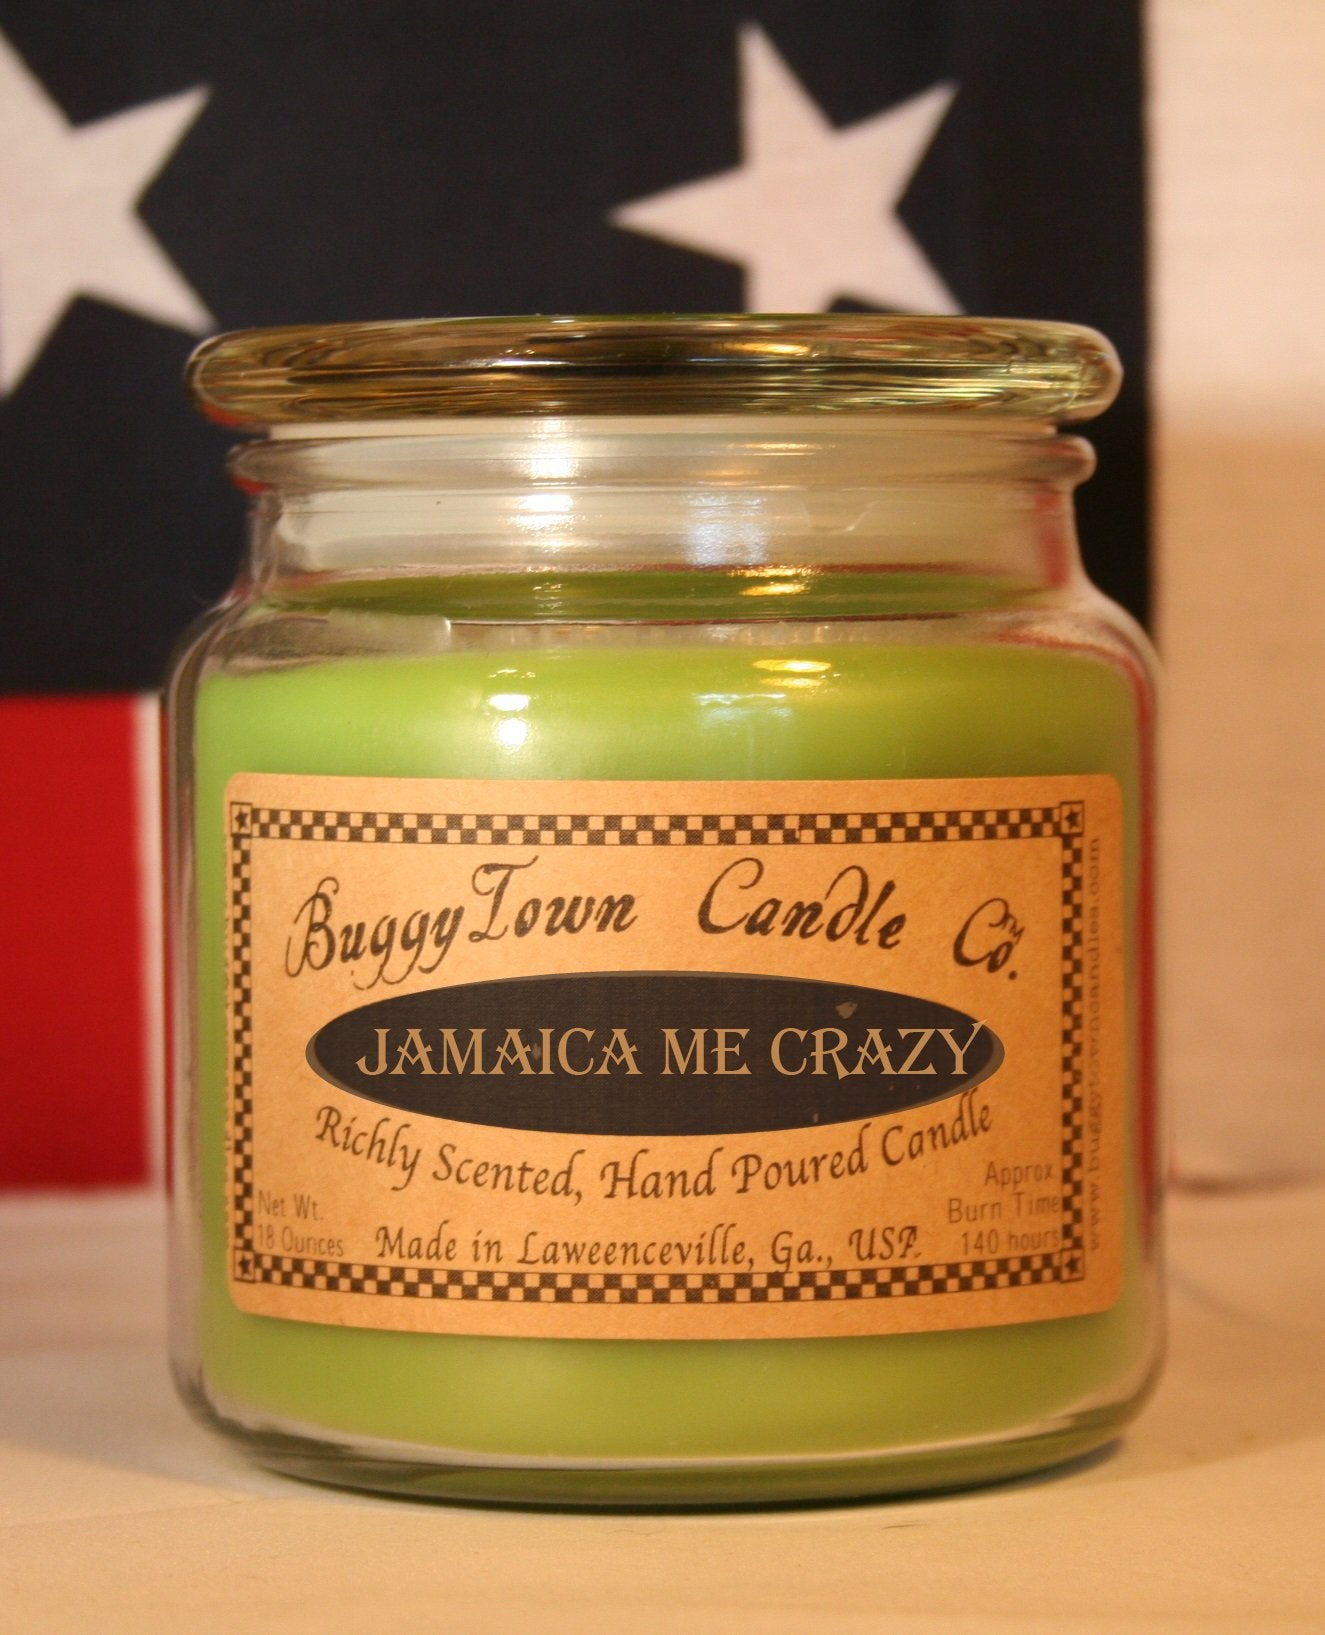 Jamaica Me Crazy Candles